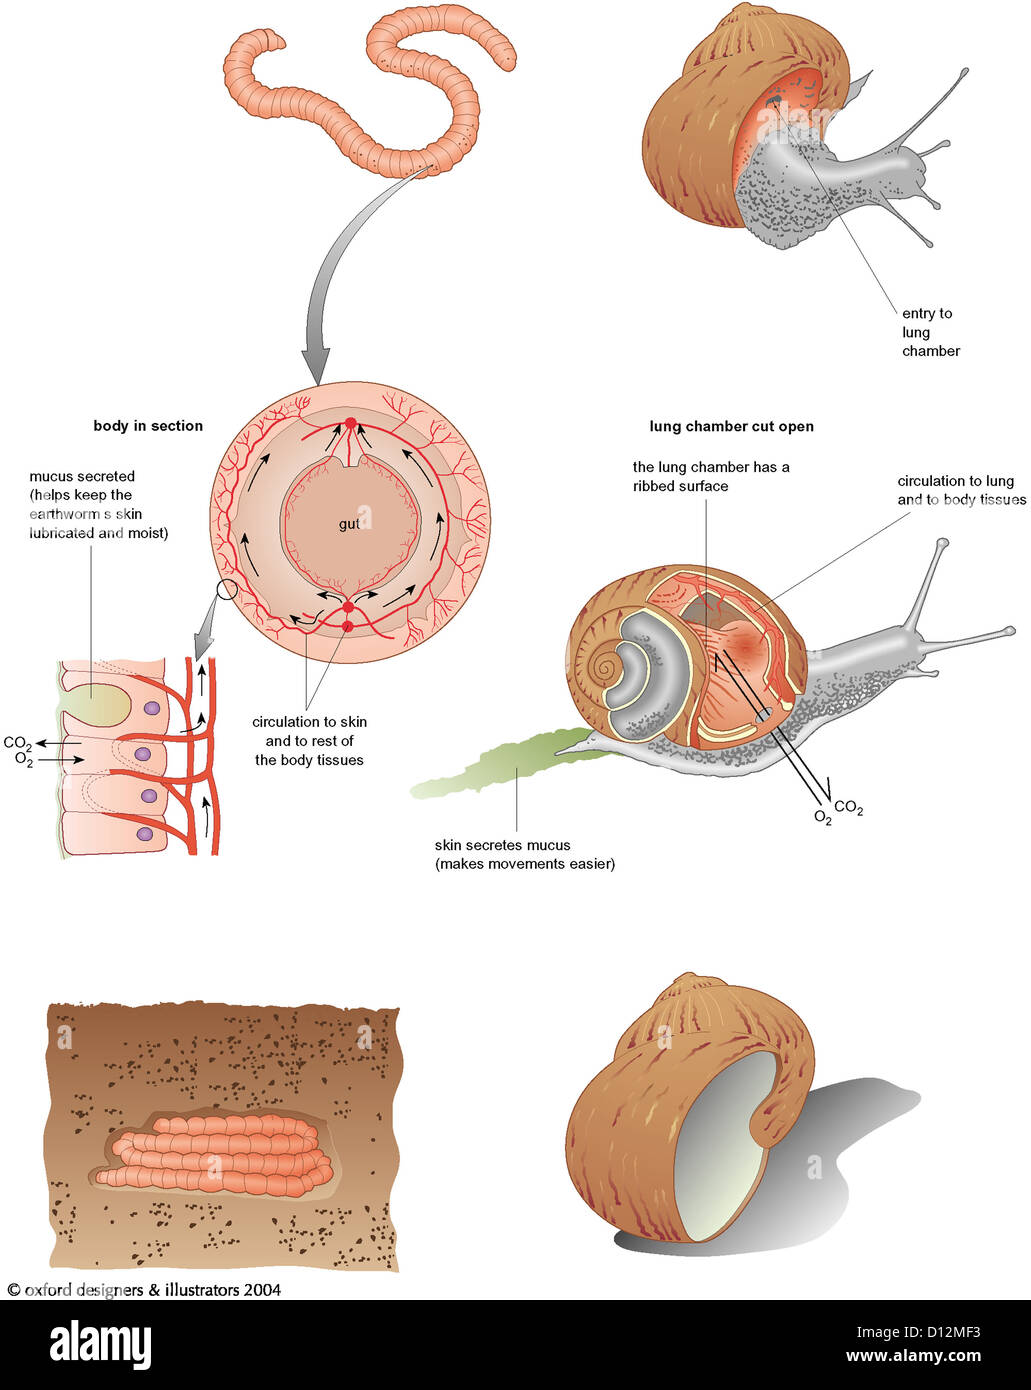 Anatomy Snail Stock Photos & Anatomy Snail Stock Images - Alamy